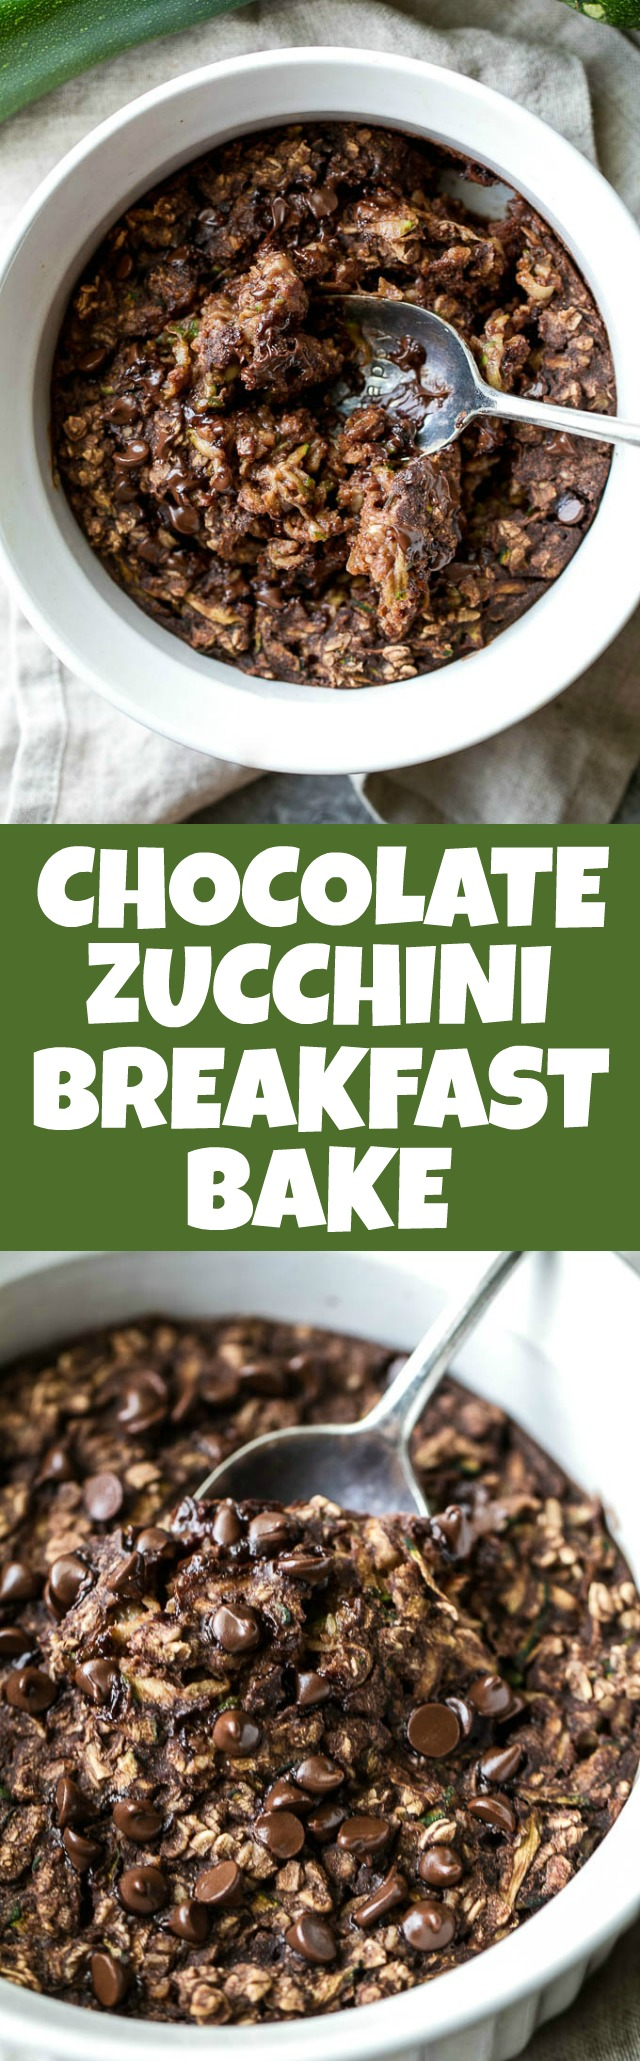 Chocolate Zucchini Breakfast Bake - loaded with fibre, healthy fats, and plant-based protein, while tasting like you're having desert for breakfast! Naturally sweetened and easily made vegan and/or gluten-free, it's a healthy and delicious way to start your day | runningwithspoons.com